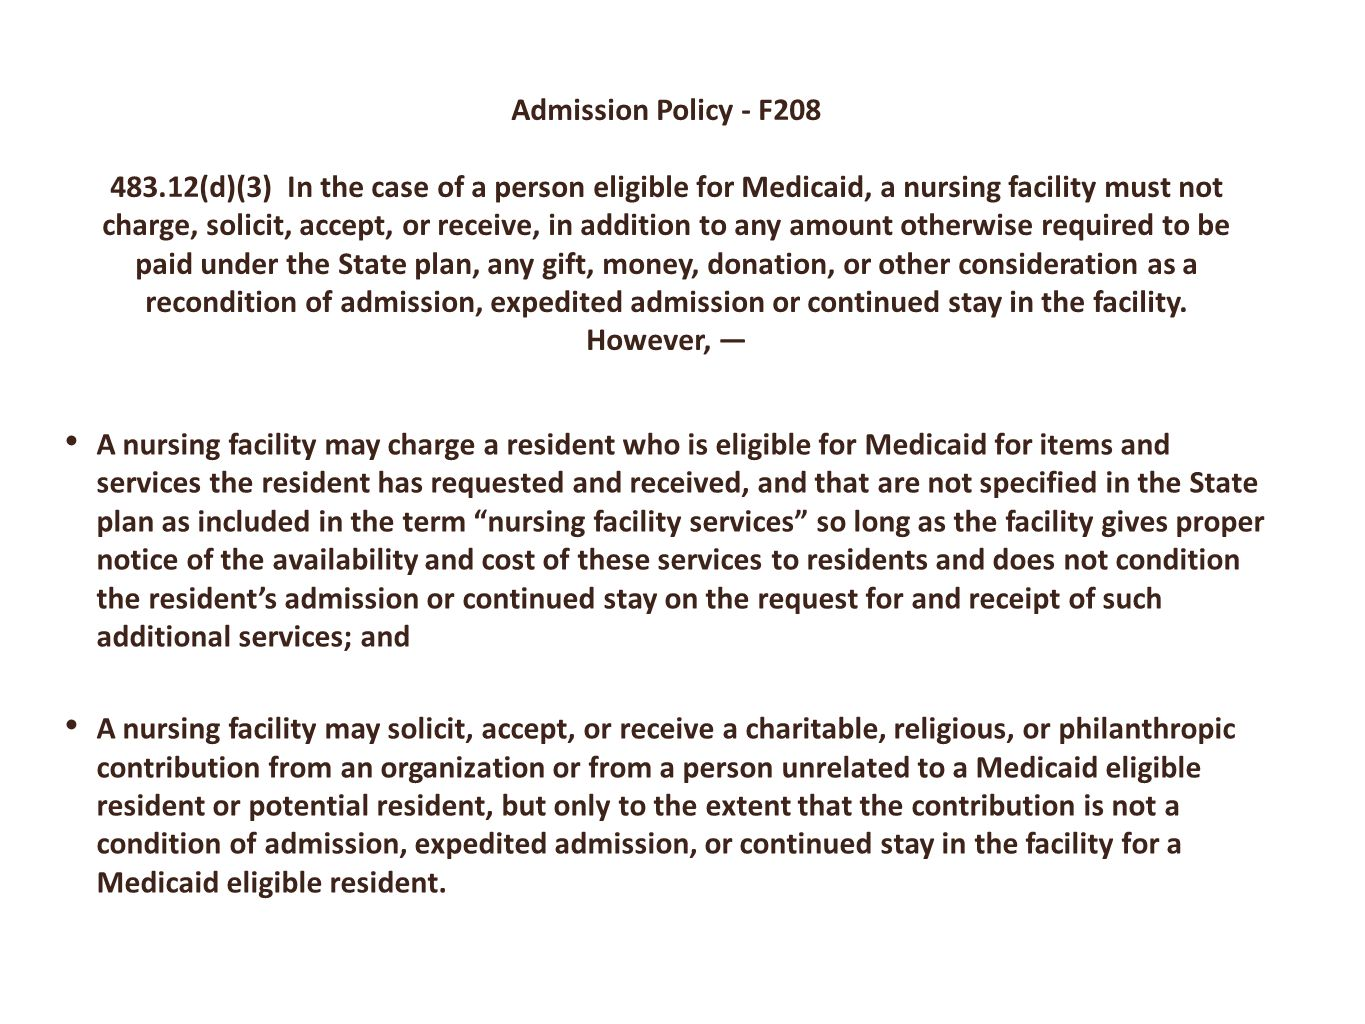 Admission Policy - F208 483.12(d)(3) In the case of a person eligible for Medicaid, a nursing facility must not charge, solicit, accept, or receive, in addition to any amount otherwise required to be paid under the State plan, any gift, money, donation, or other consideration as a recondition of admission, expedited admission or continued stay in the facility. However, —